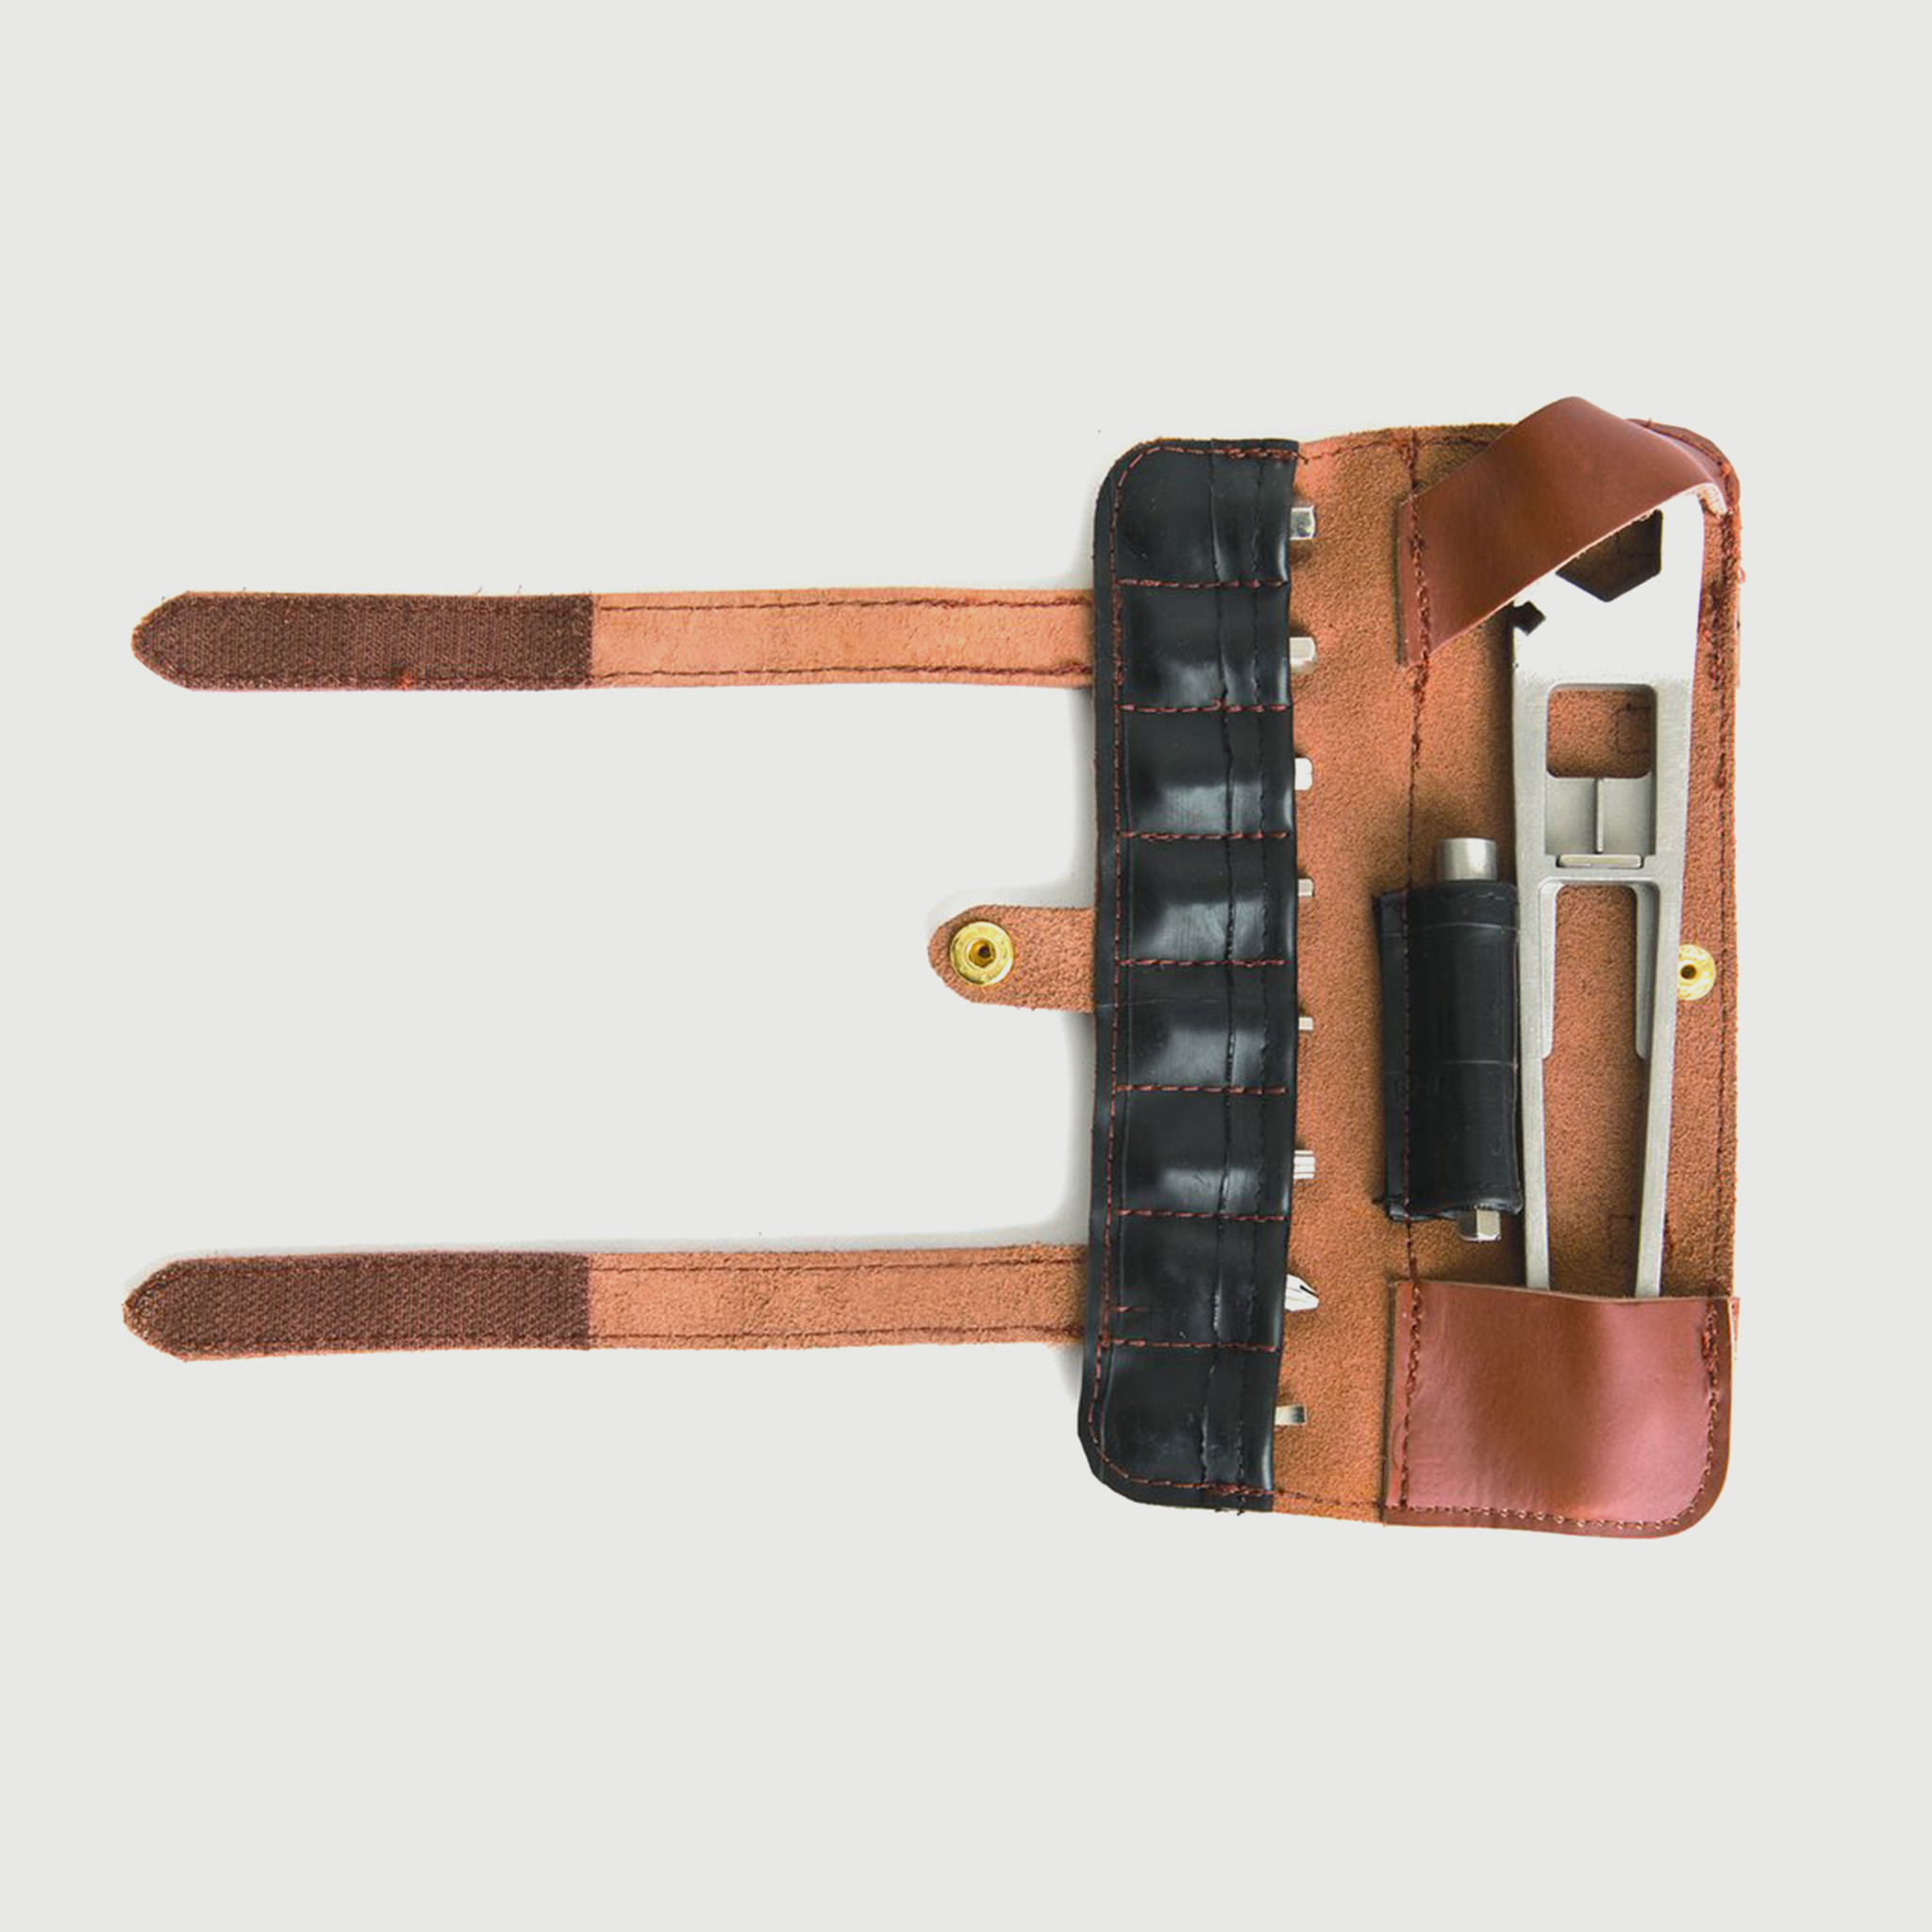 Full Windsor The Nutter Cycle Multi Tool with pouch